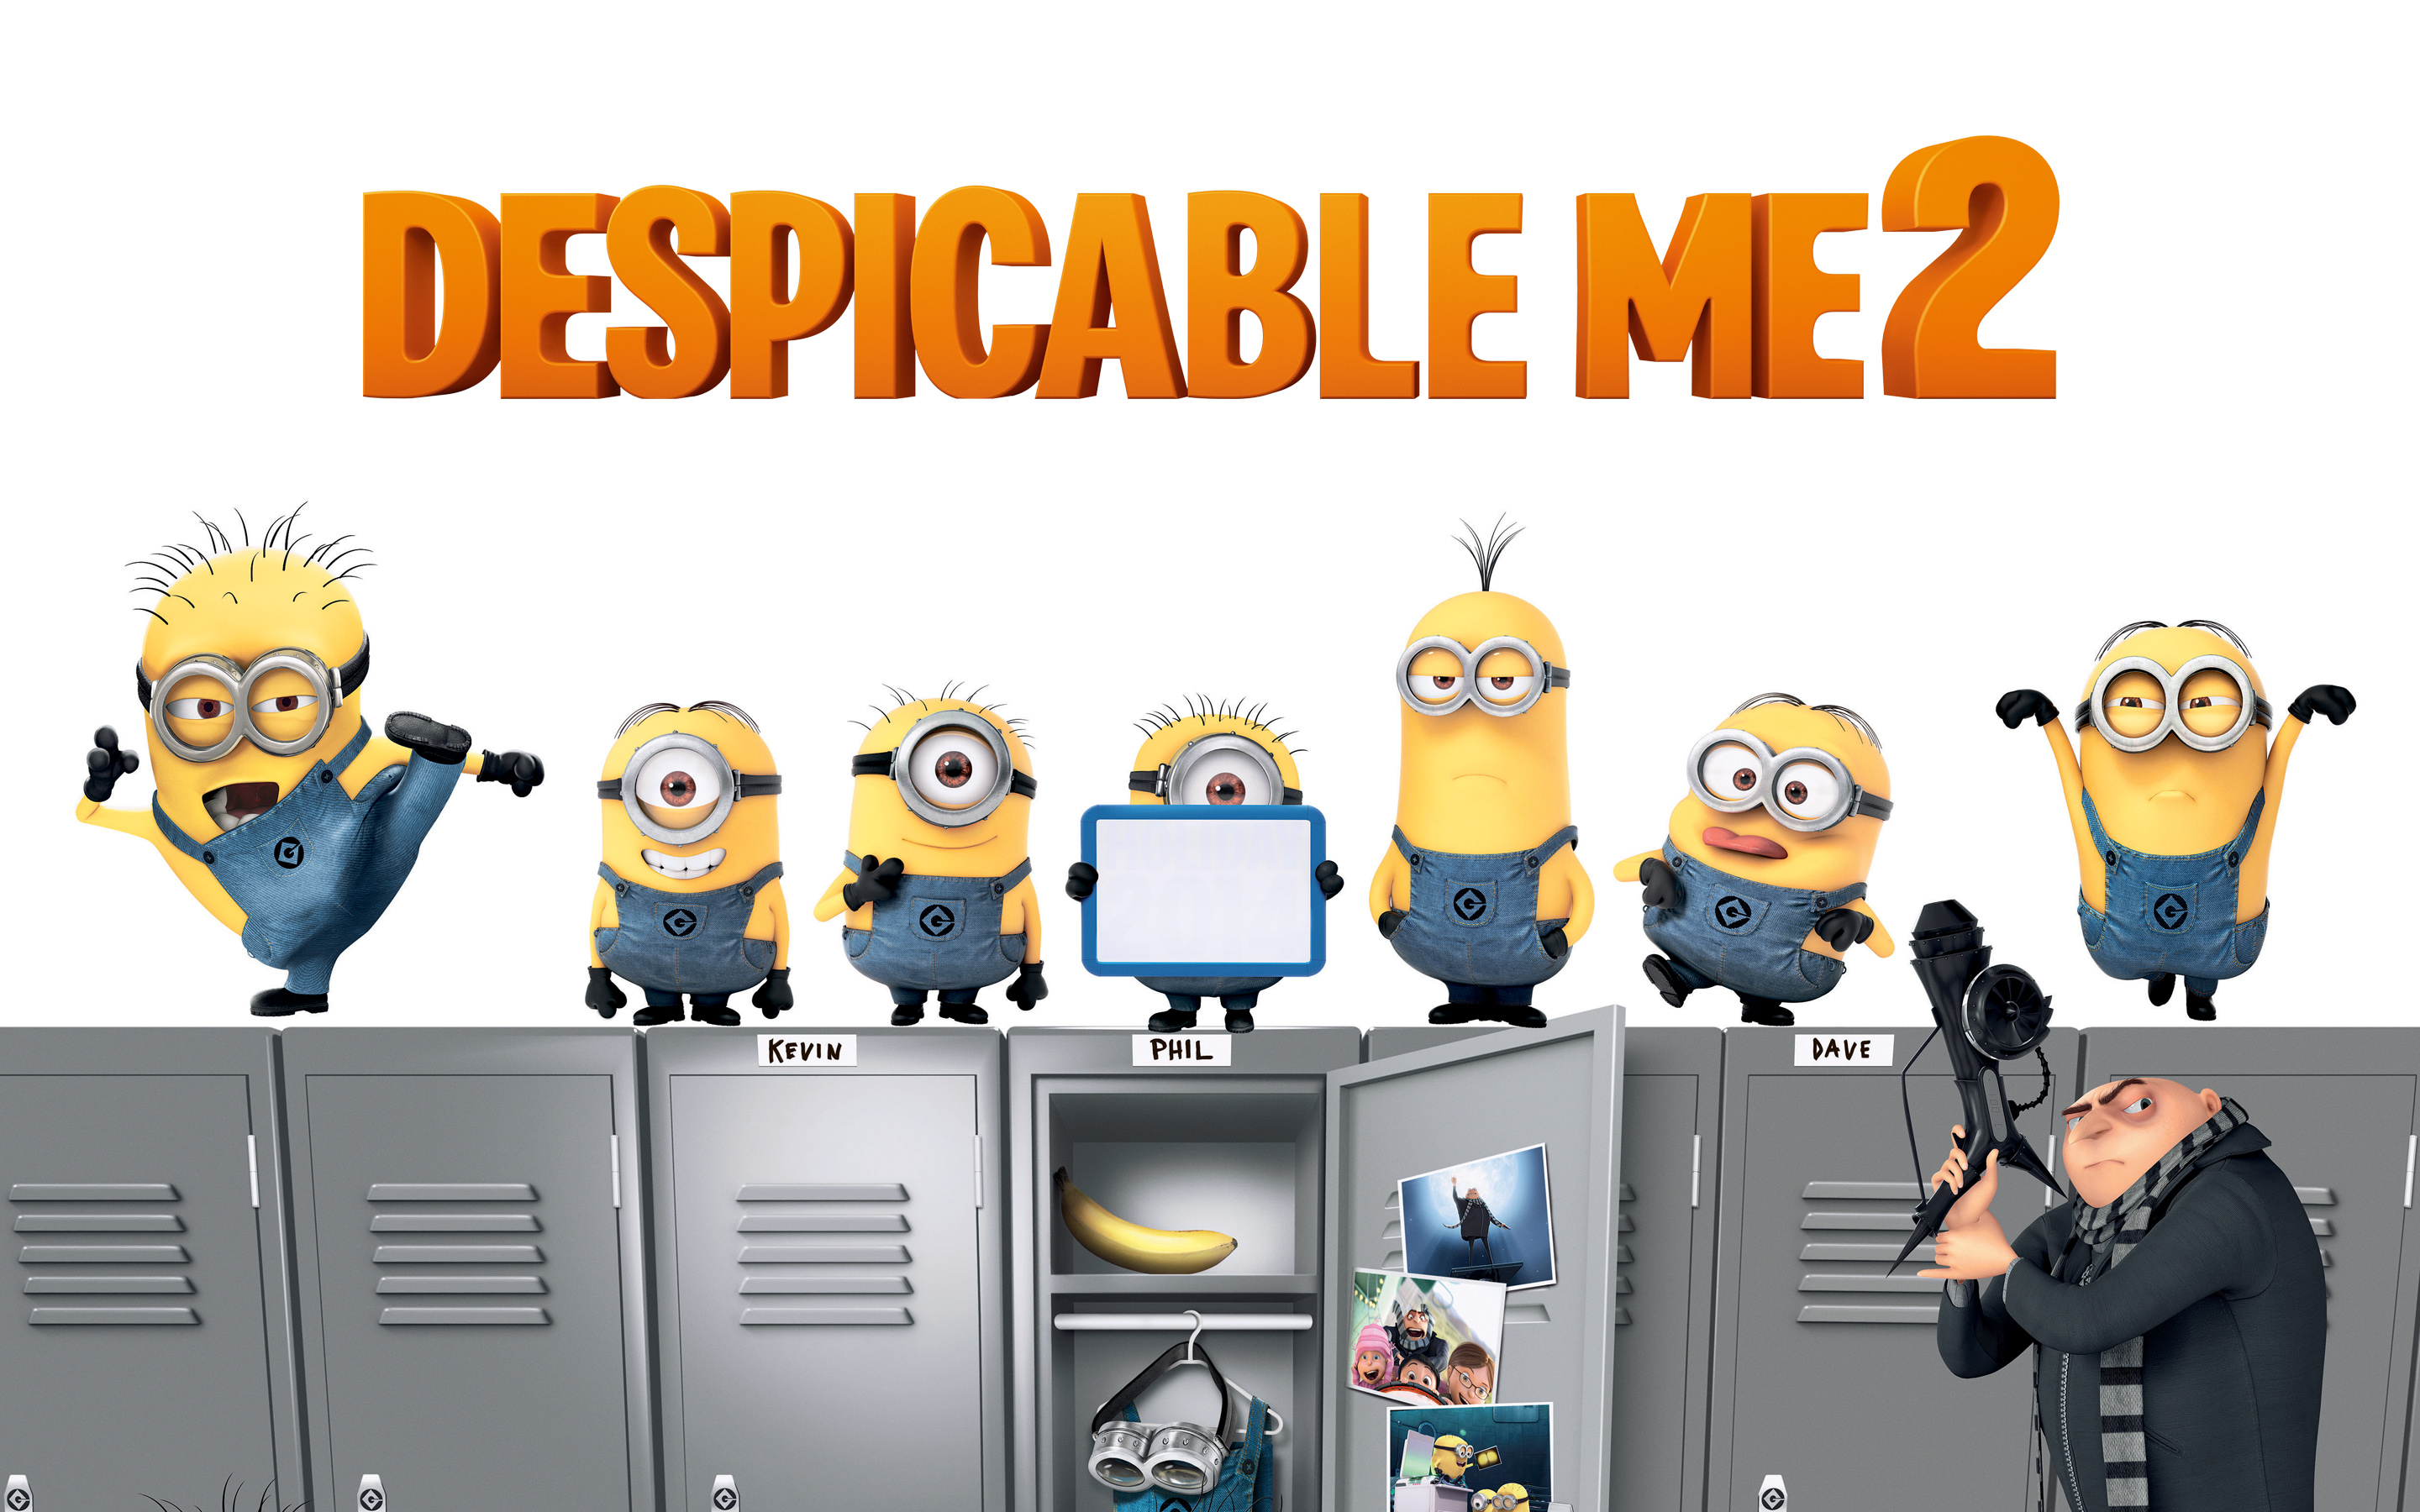 Despicable me 2 club images despicable me 2 hd despicable me 2 club images despicable me 2 hd wallpaper and background photos voltagebd Gallery